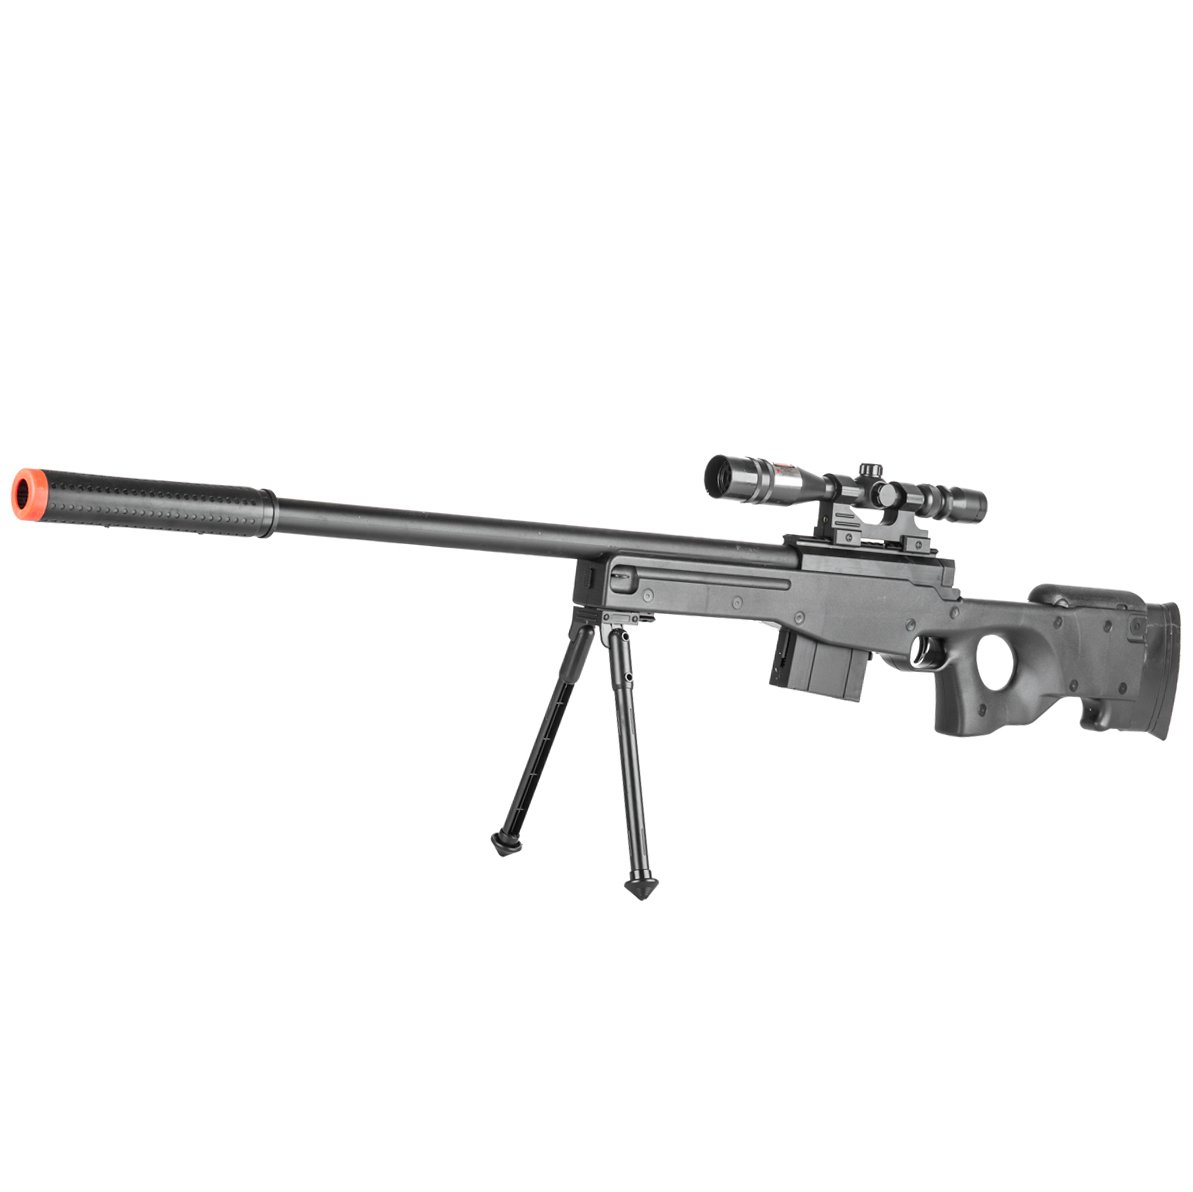 BBTac Airsoft Sniper Rifle Gun - Powerful Spring Loaded Easy to use, Great for Starter Pack Game Play by BBTac